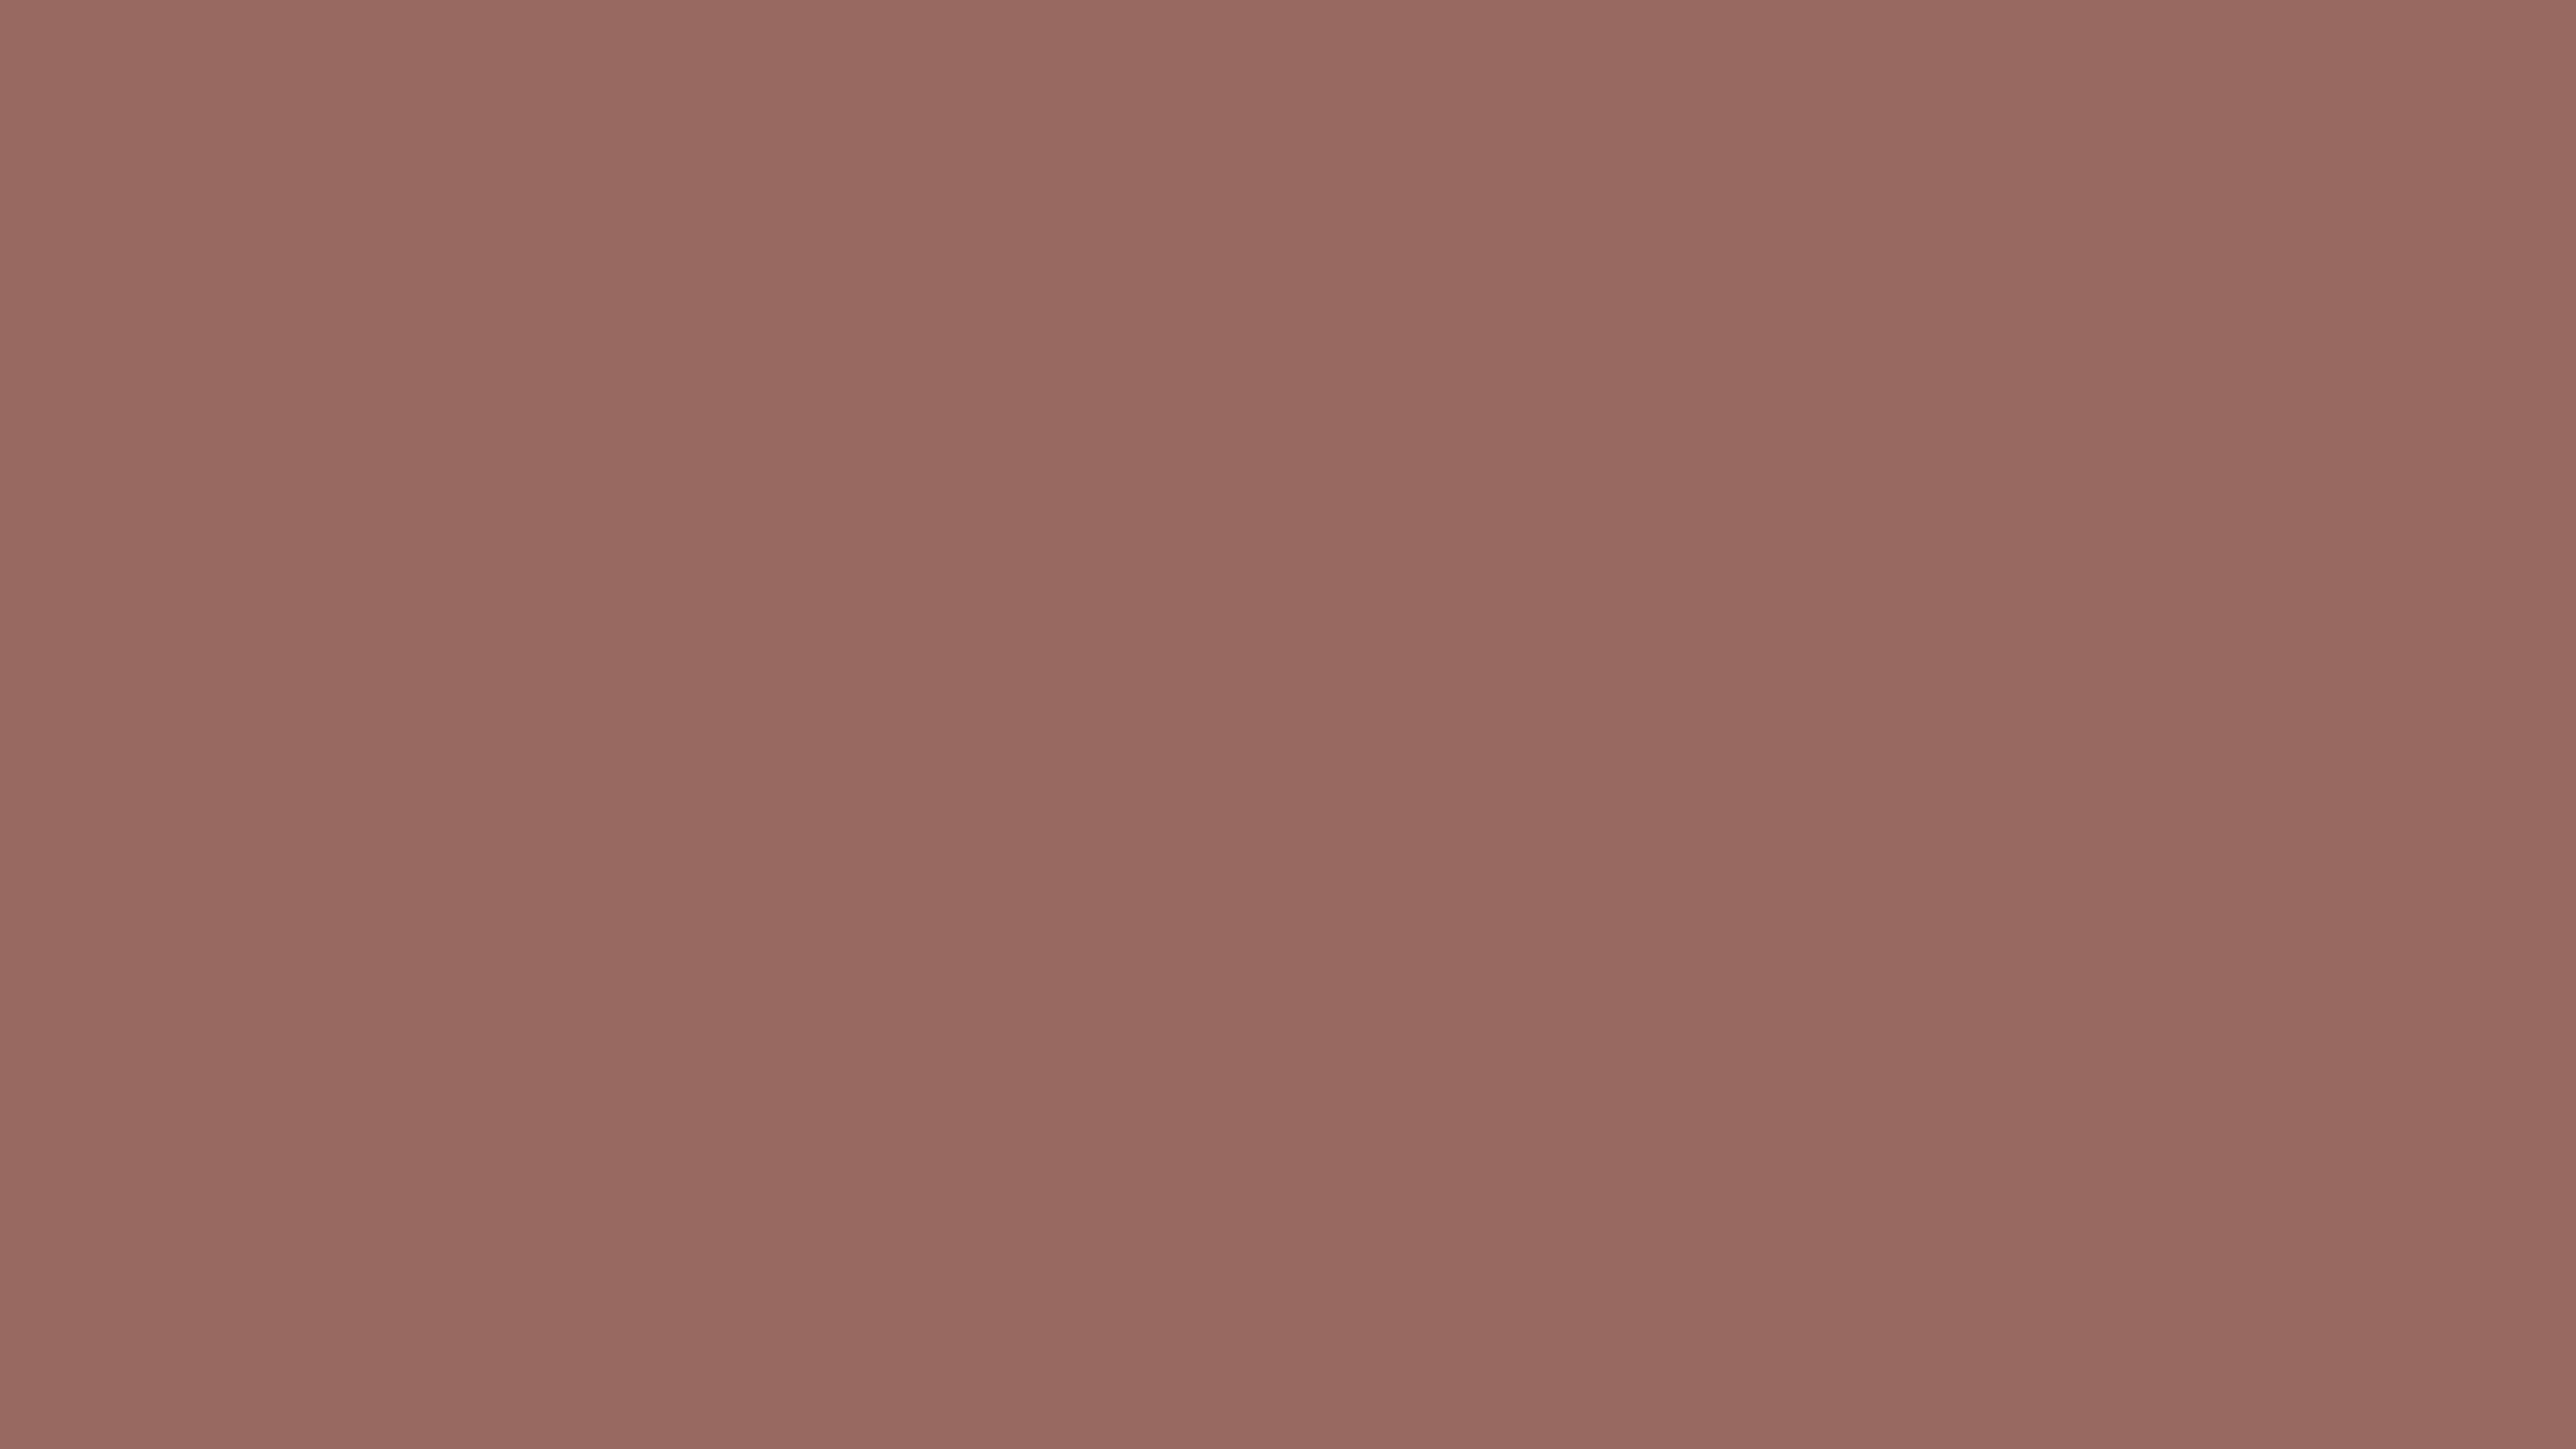 4096x2304 Dark Chestnut Solid Color Background